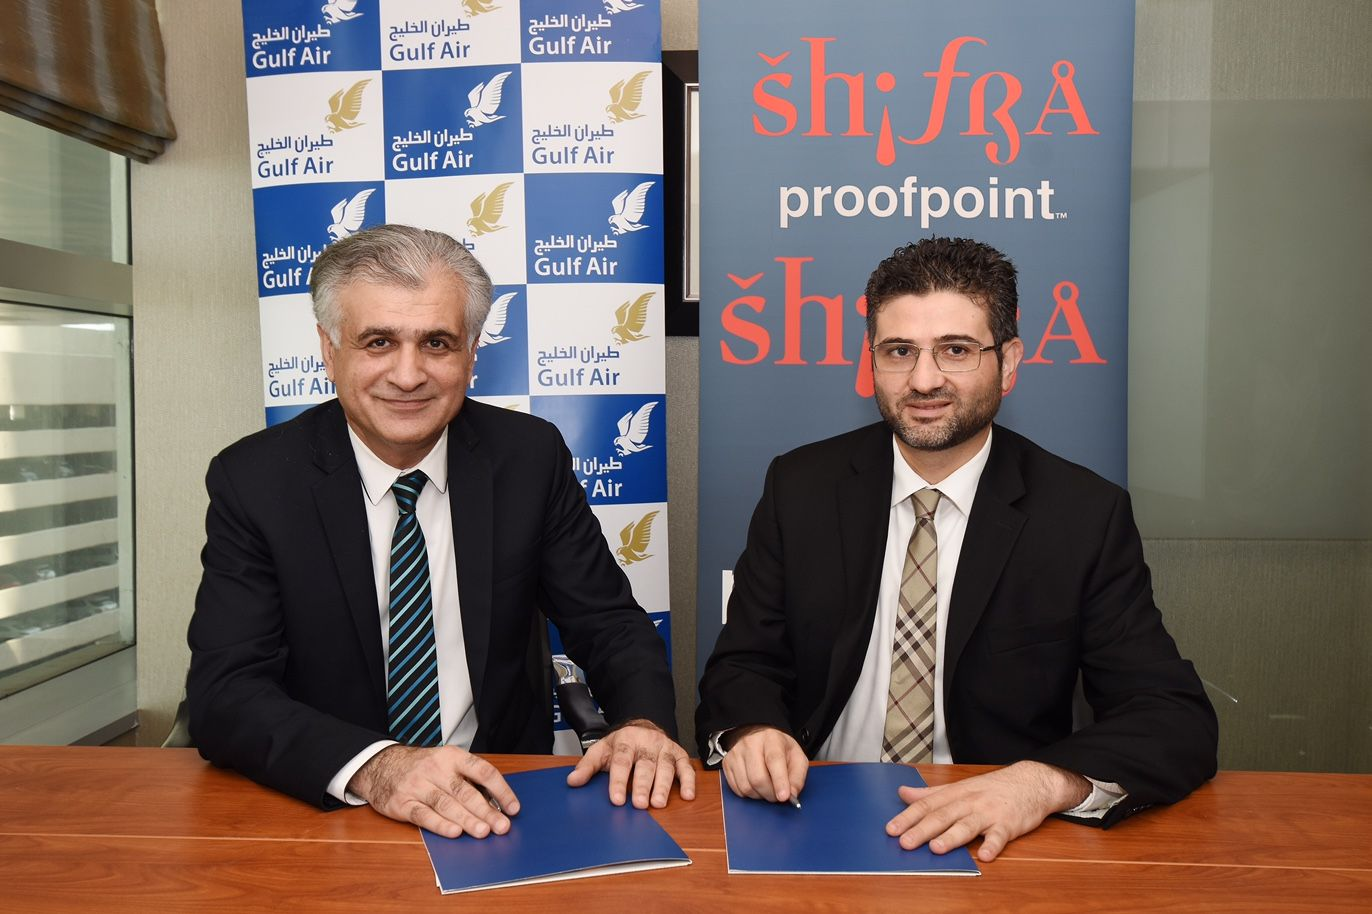 Gulf Air implements Proofpoint e-mail security announces Shifra